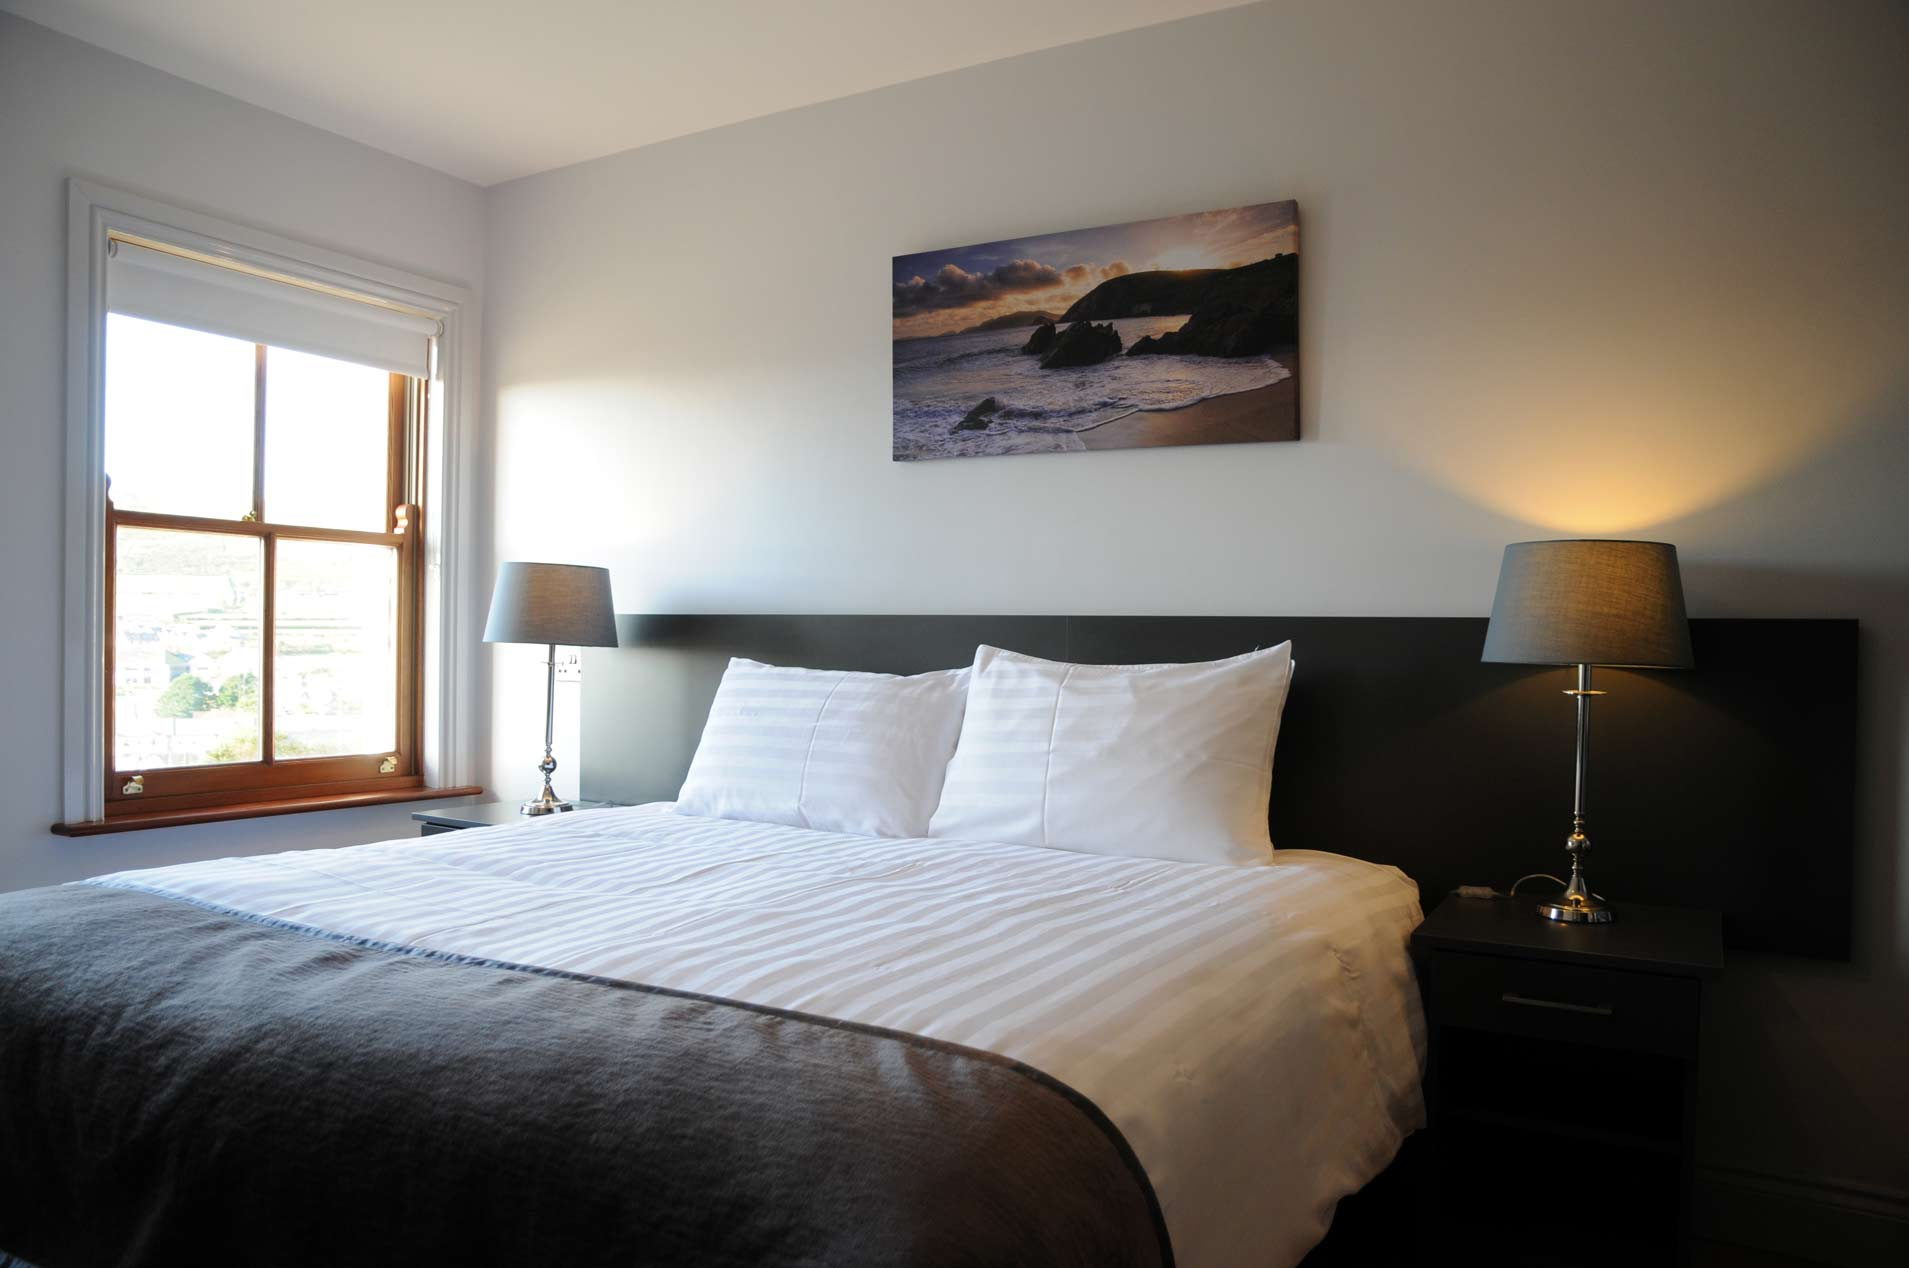 View of the bedroom in our self catering luxury holiday homes for family accommodation in Dingle, Kerry, Ireland